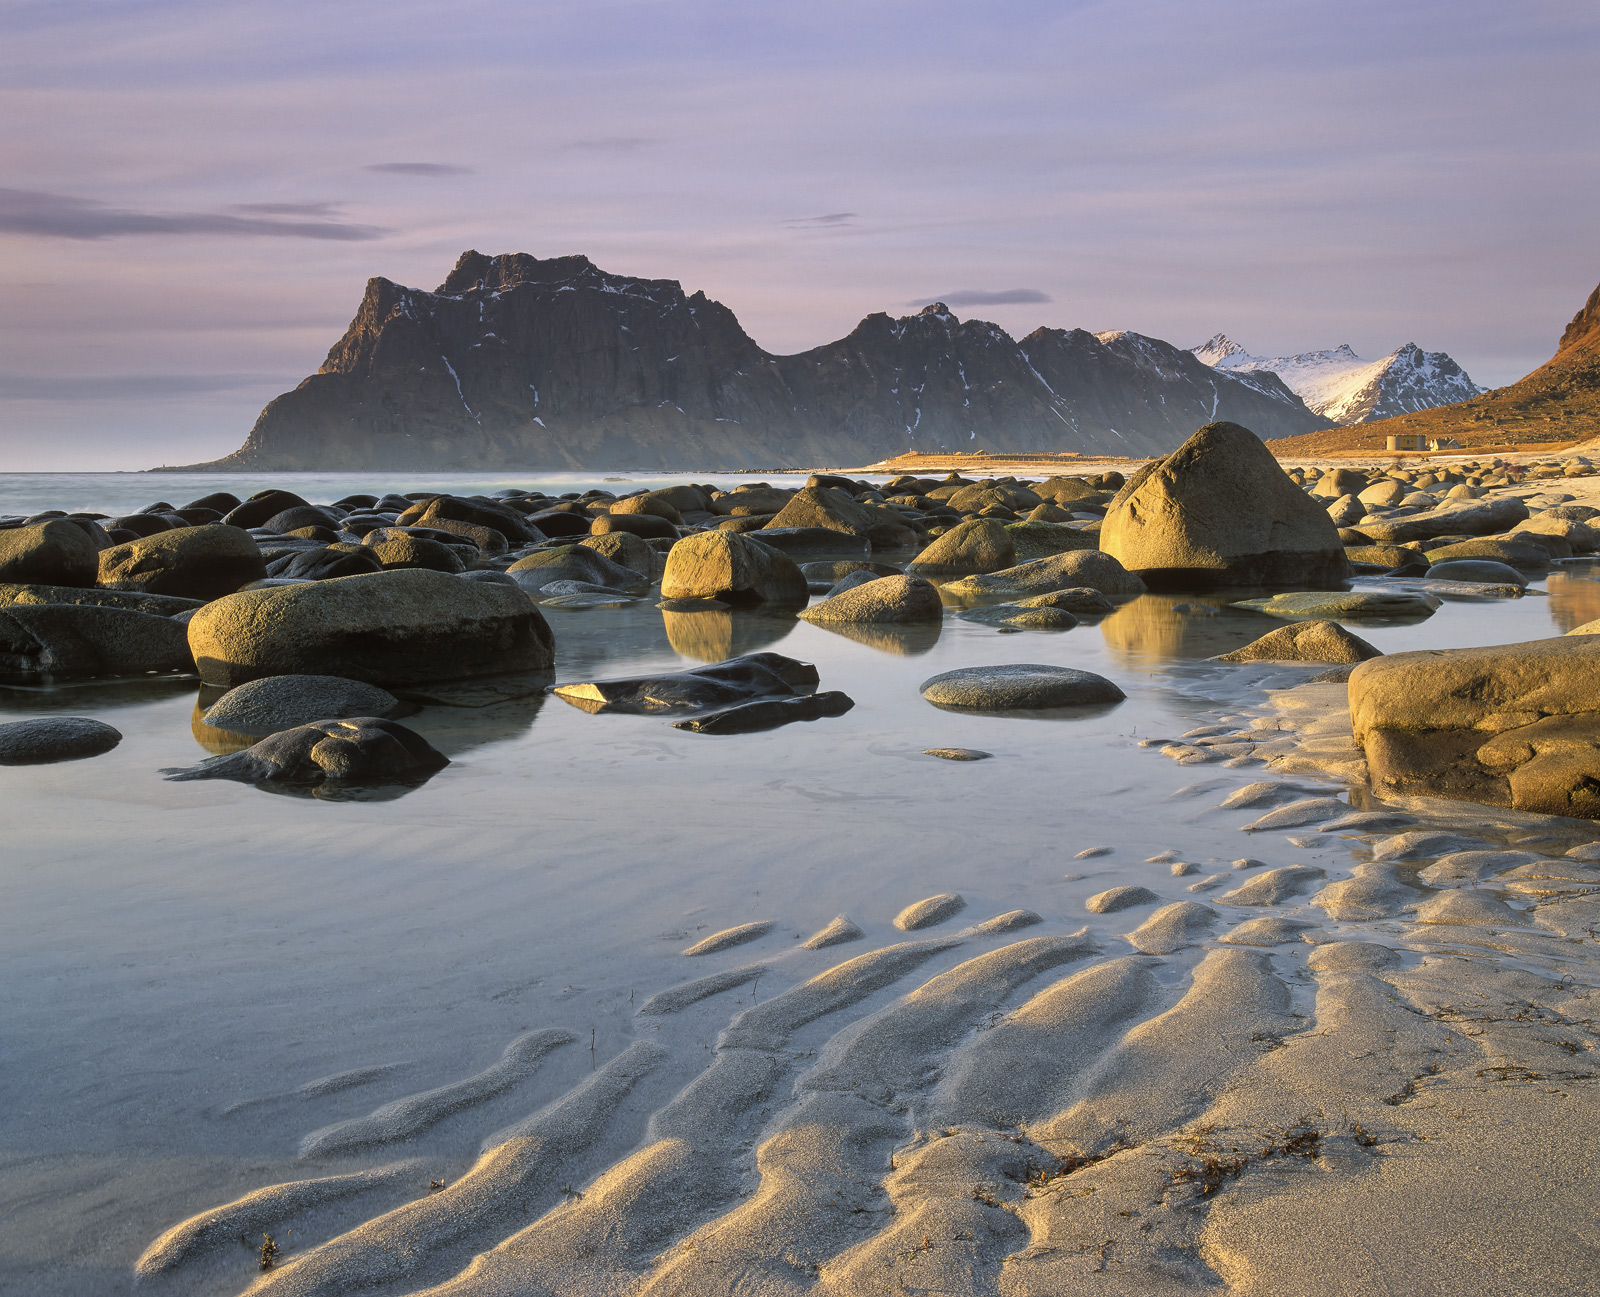 Rippled sand on the beach at Uttakliev in the Lofoten islands leads past rimlit smooth boulders burnished gold by the late afternoon...